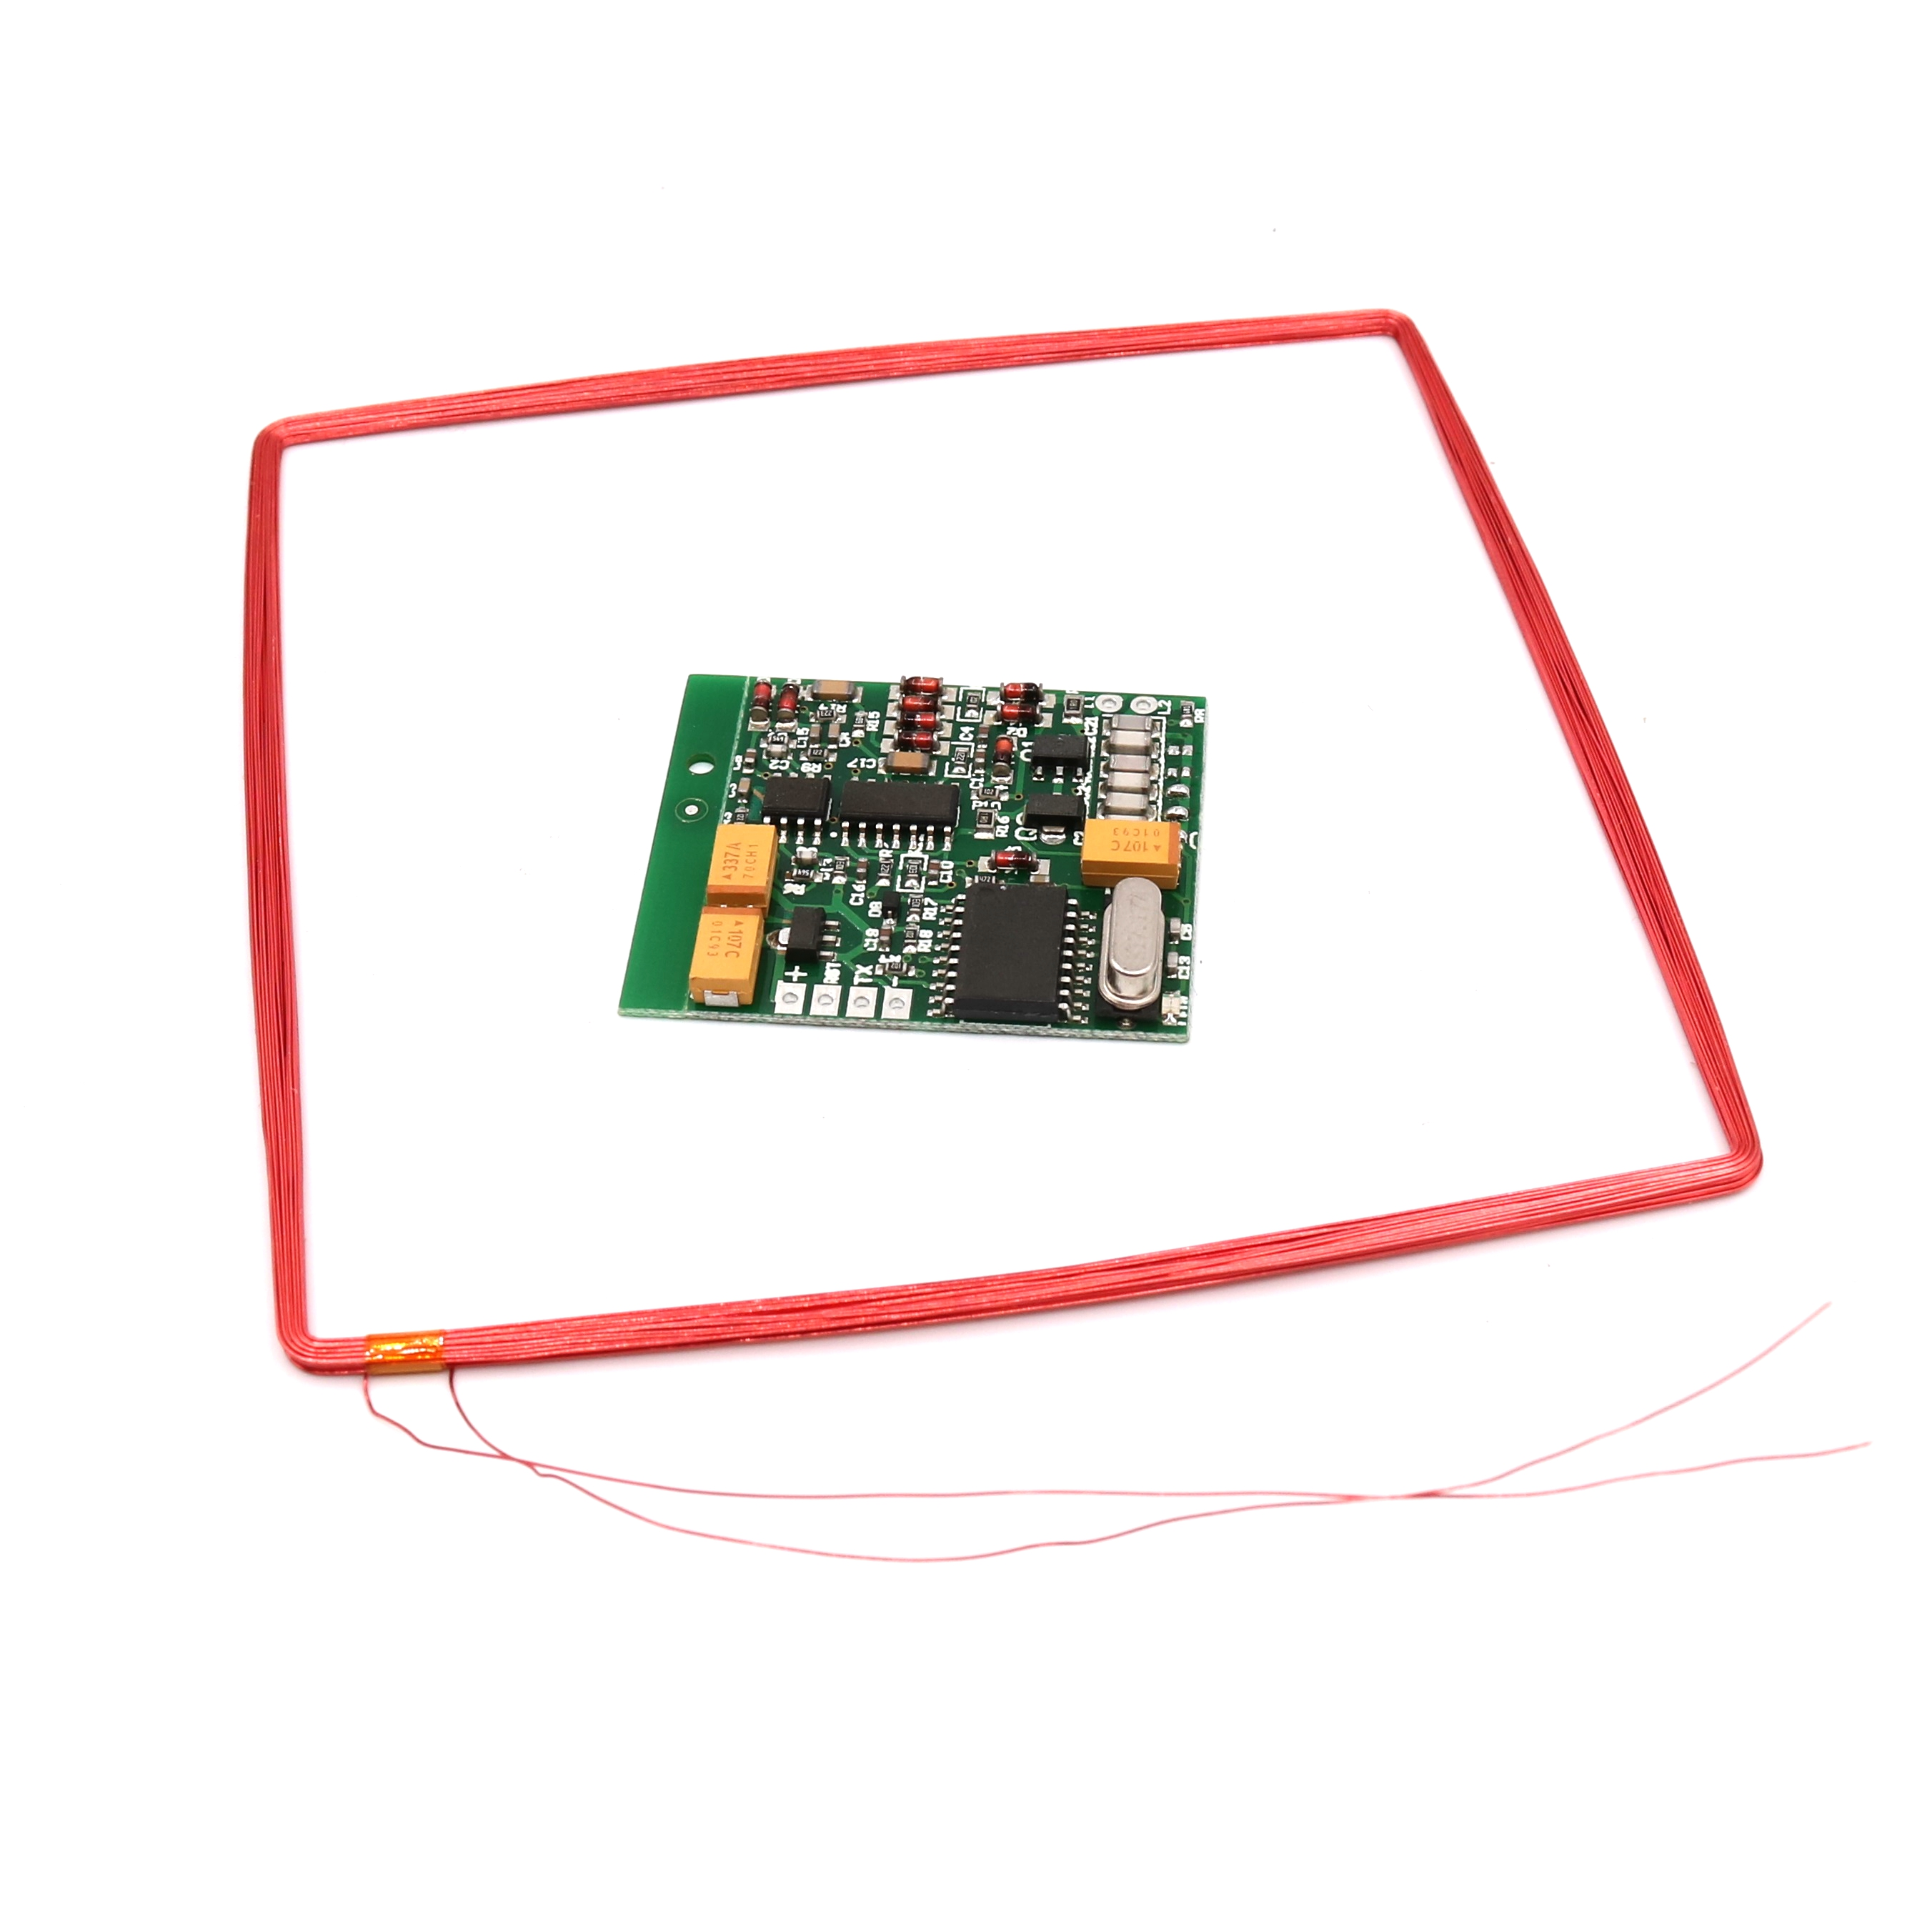 134.2K Long distance RFID AGV Animal Tag Reader Module TTL Interface ISO11784/85 FDX-B